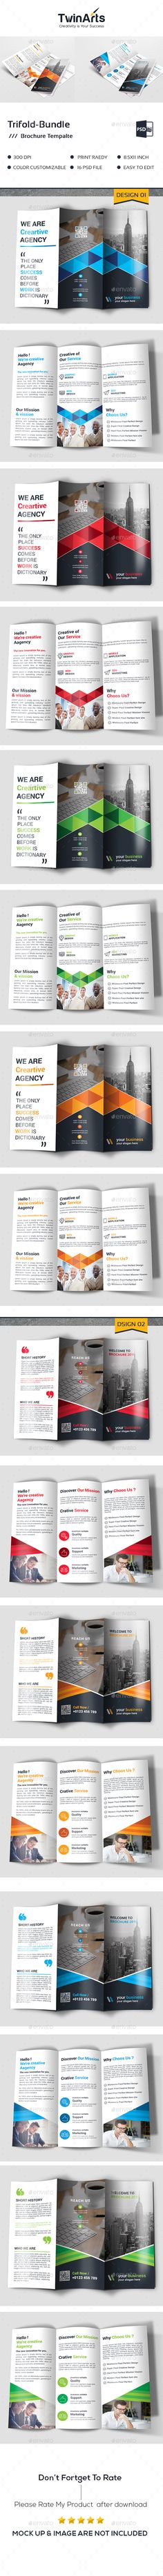 Trifold Bundle - Brochures Print Templates Download here : https://graphicriver.net/item/trifold-bundle/19478987?s_rank=17&ref=Al-fatih